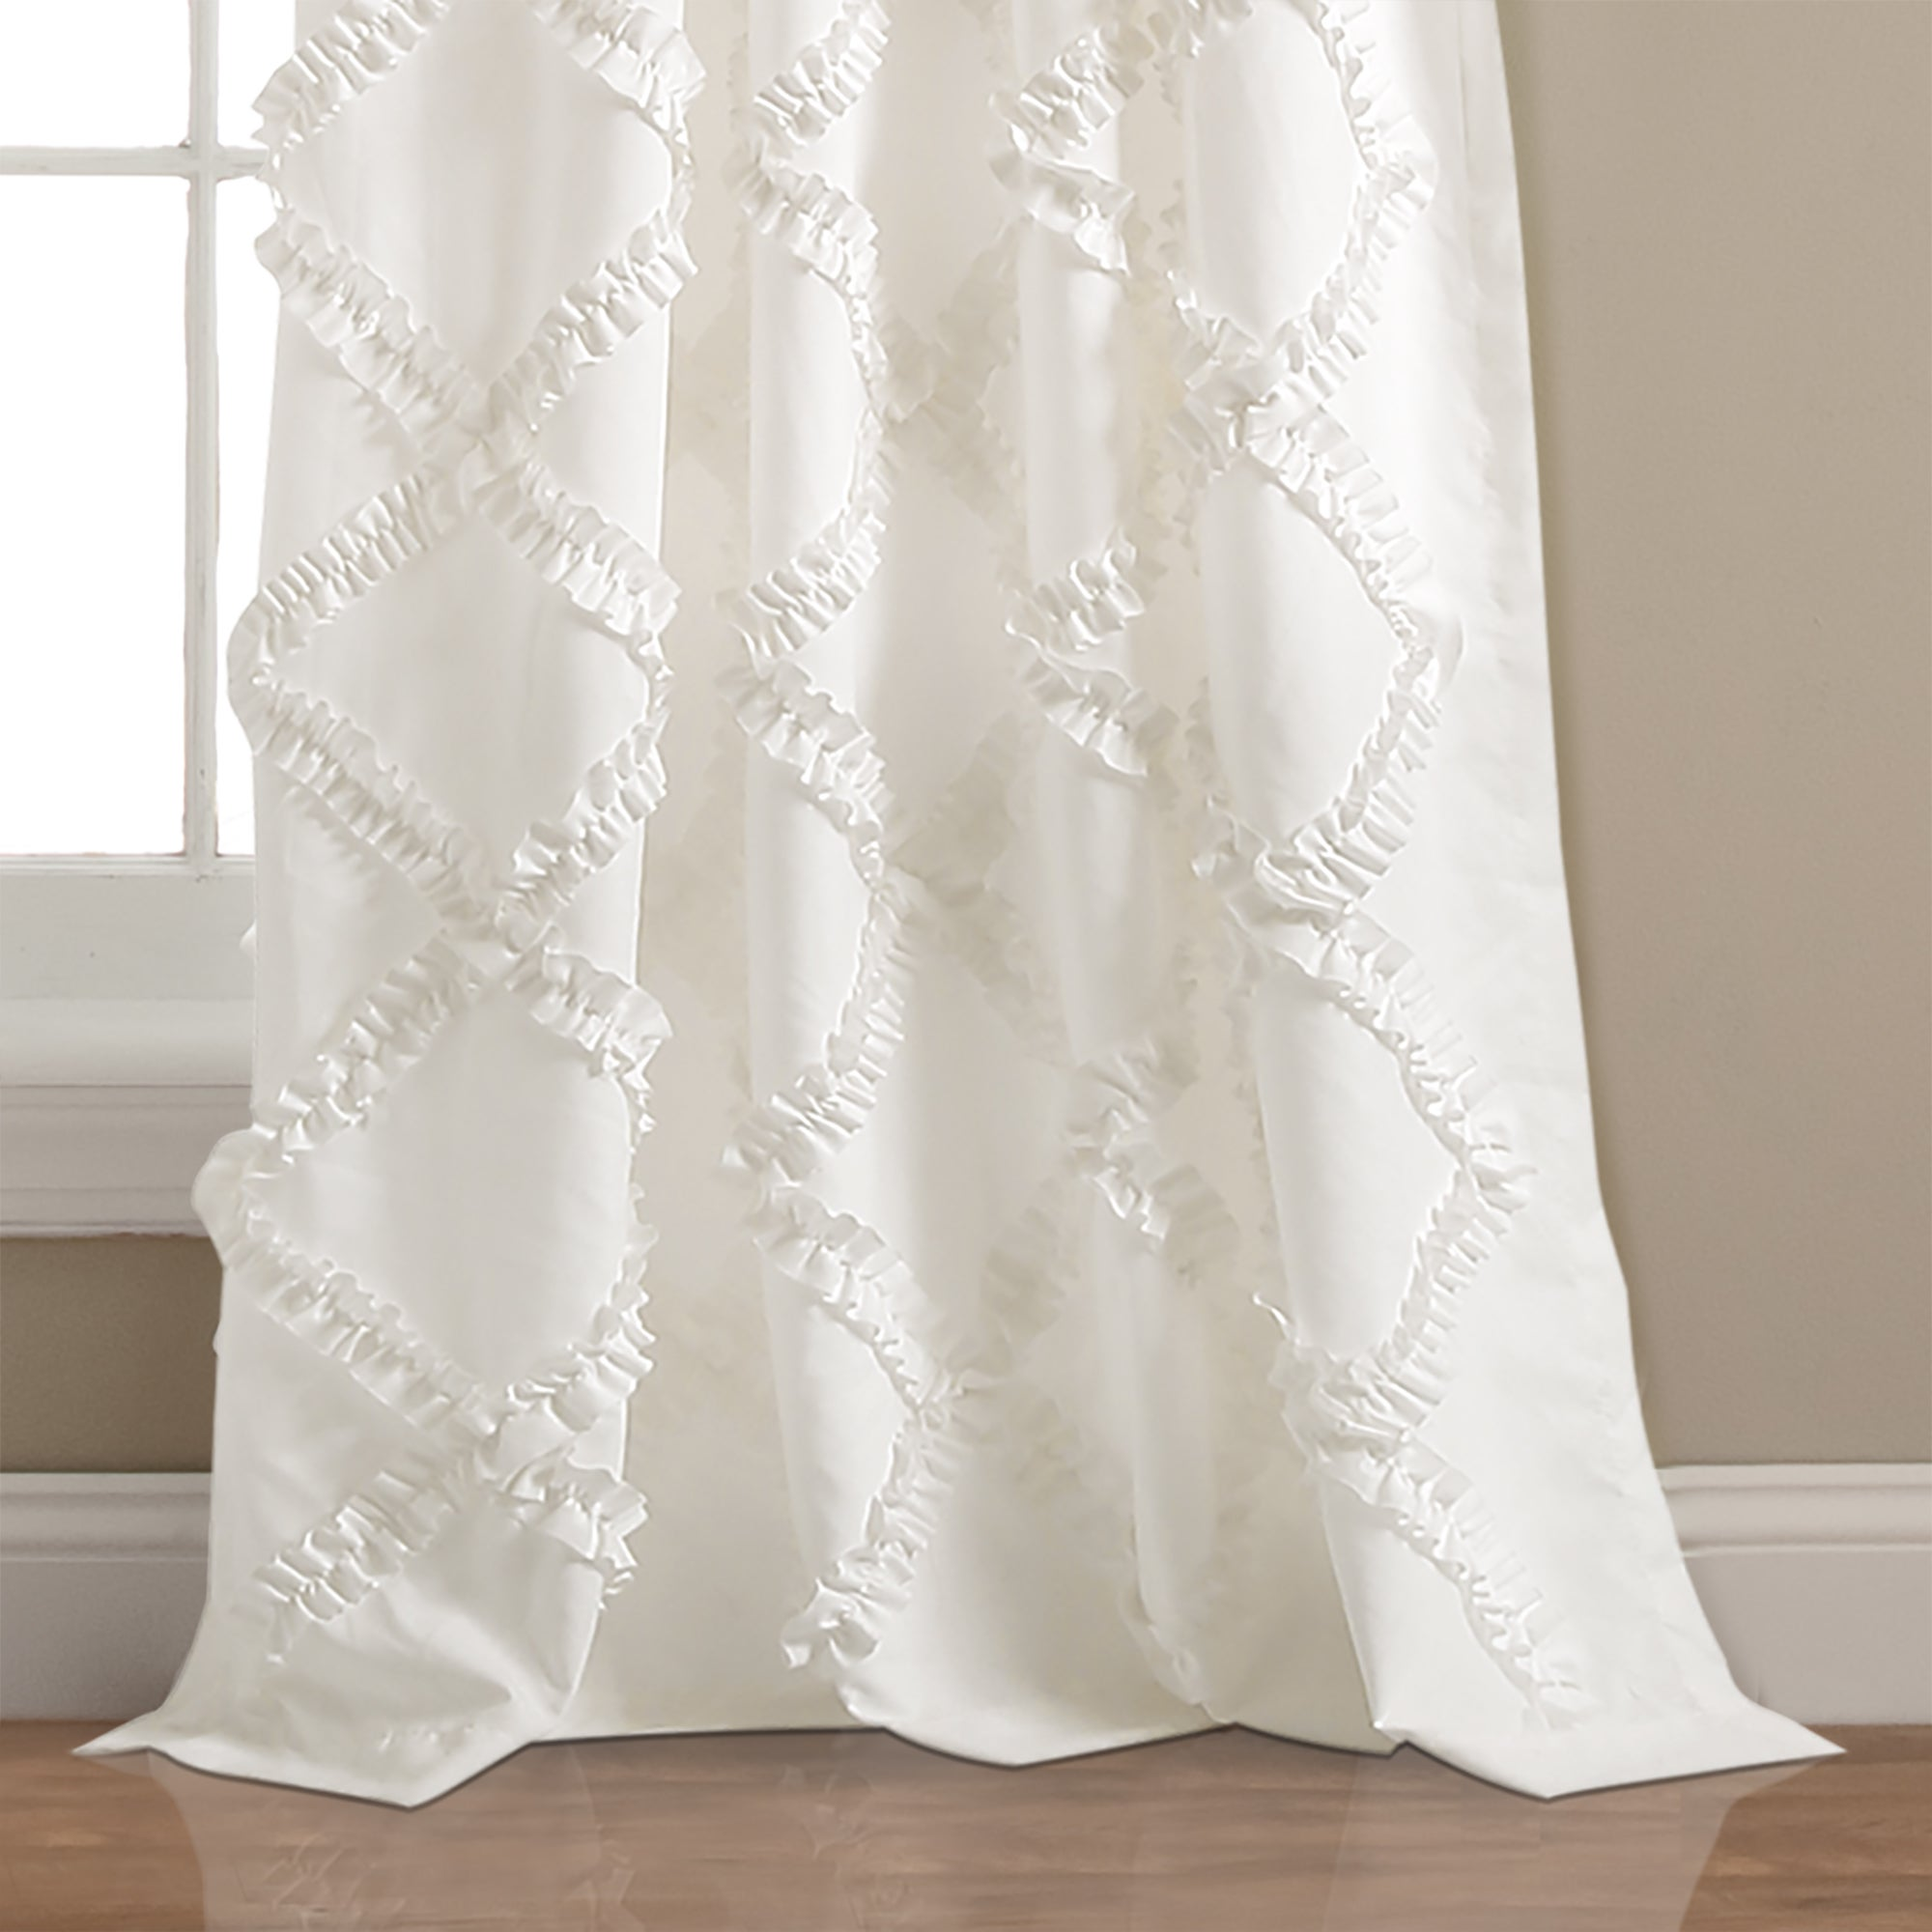 curtains curtain no ruffles sew to recipe with make bows panels pin and how ruffle panel